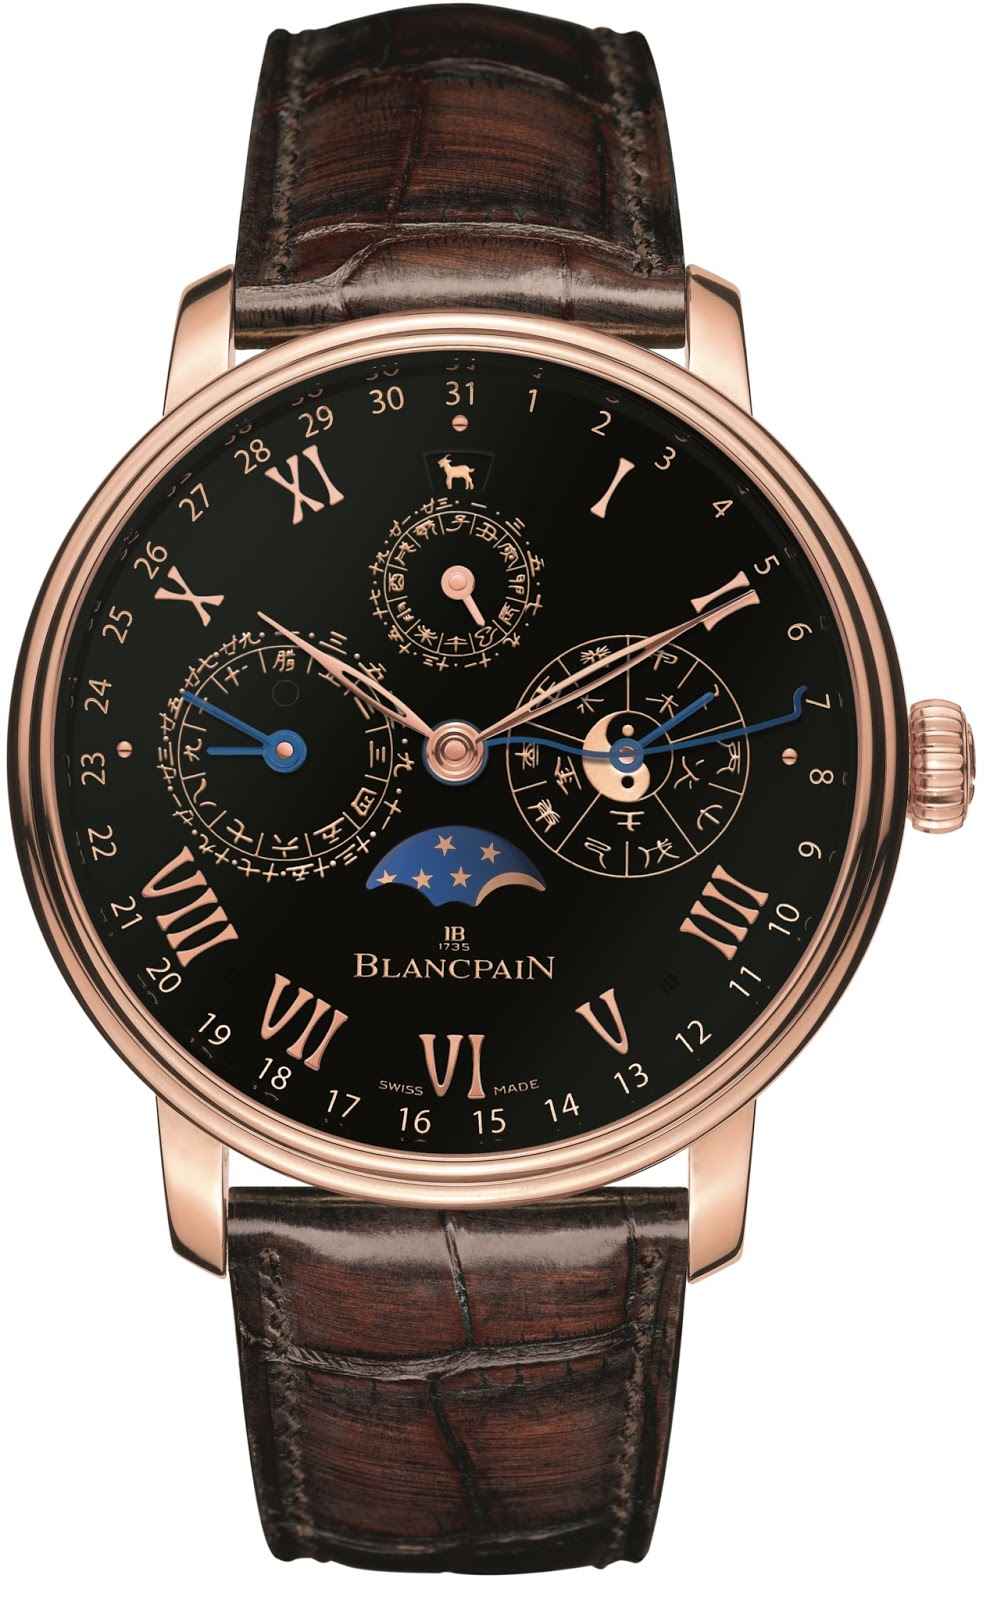 Blancpain - Traditional Chinese Calendar for ONLY WATCH 2015